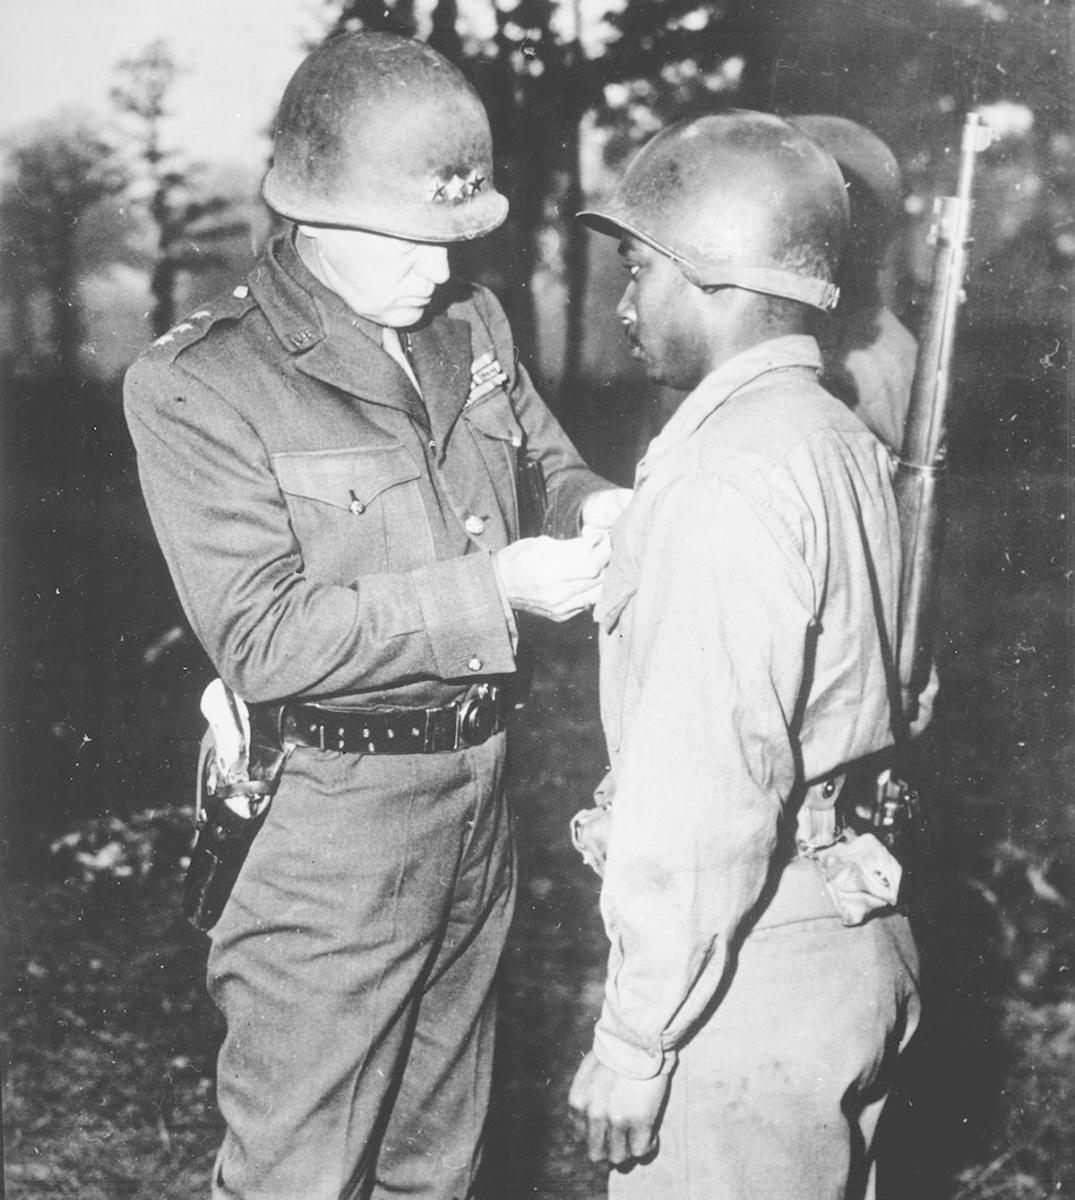 General George S. Patton, U.S. Third Army commander, pinning the Silver Star on Private Ernest A. Jenkins of New York City for his conspicuous gallantry in the liberation of Chateaudun, France, 1944. (Credit: The National Archives)